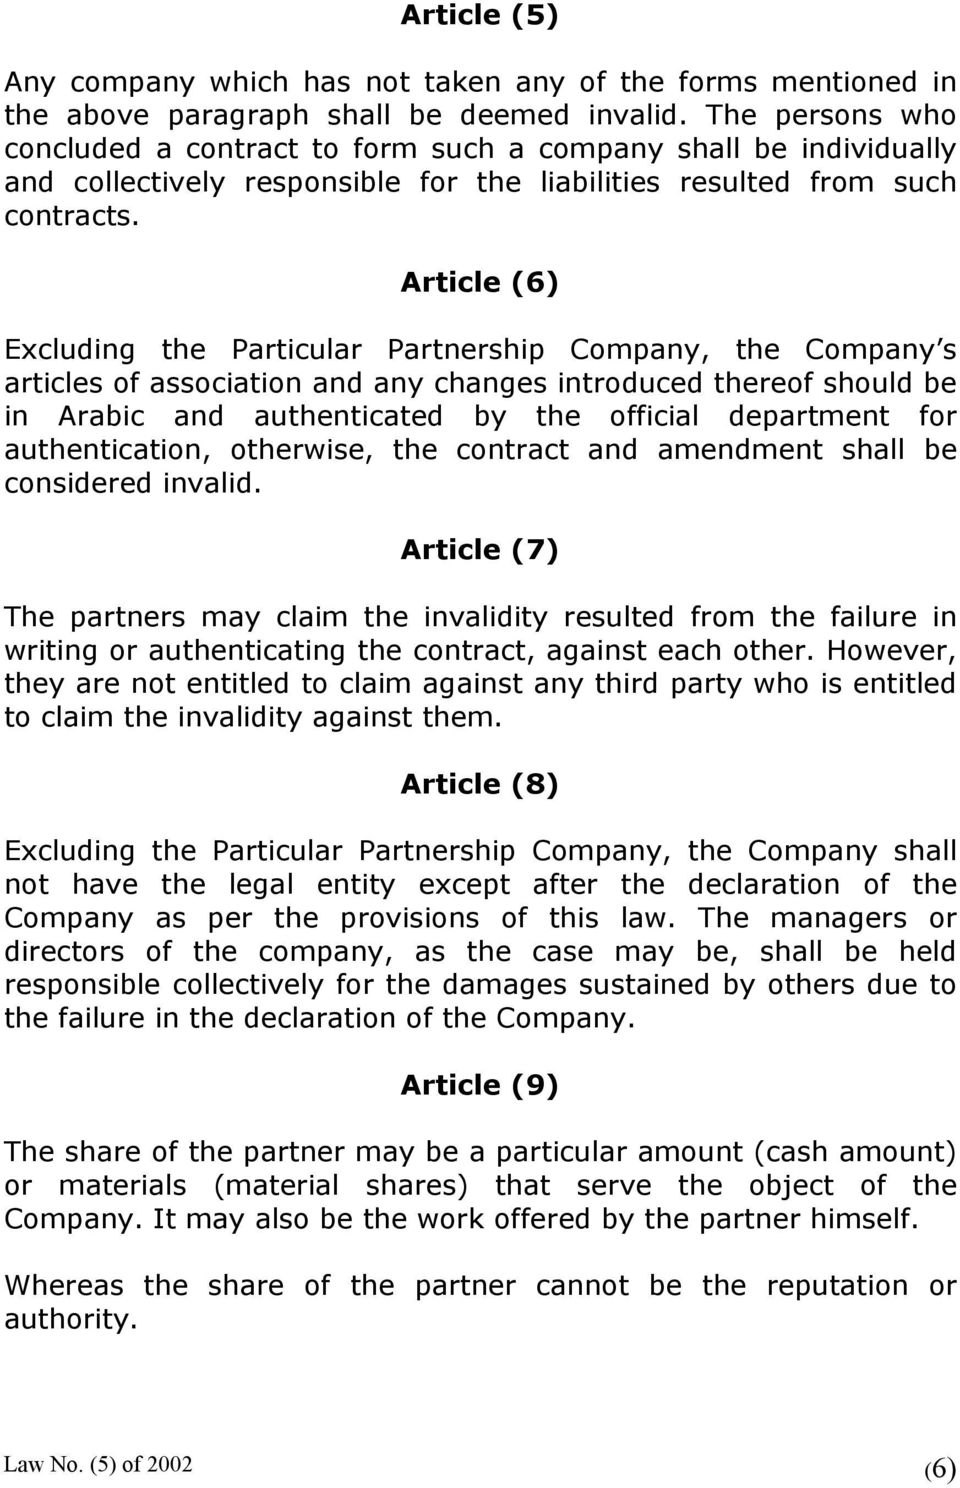 Article (6) Excluding the Particular Partnership Company, the Company s articles of association and any changes introduced thereof should be in Arabic and authenticated by the official department for